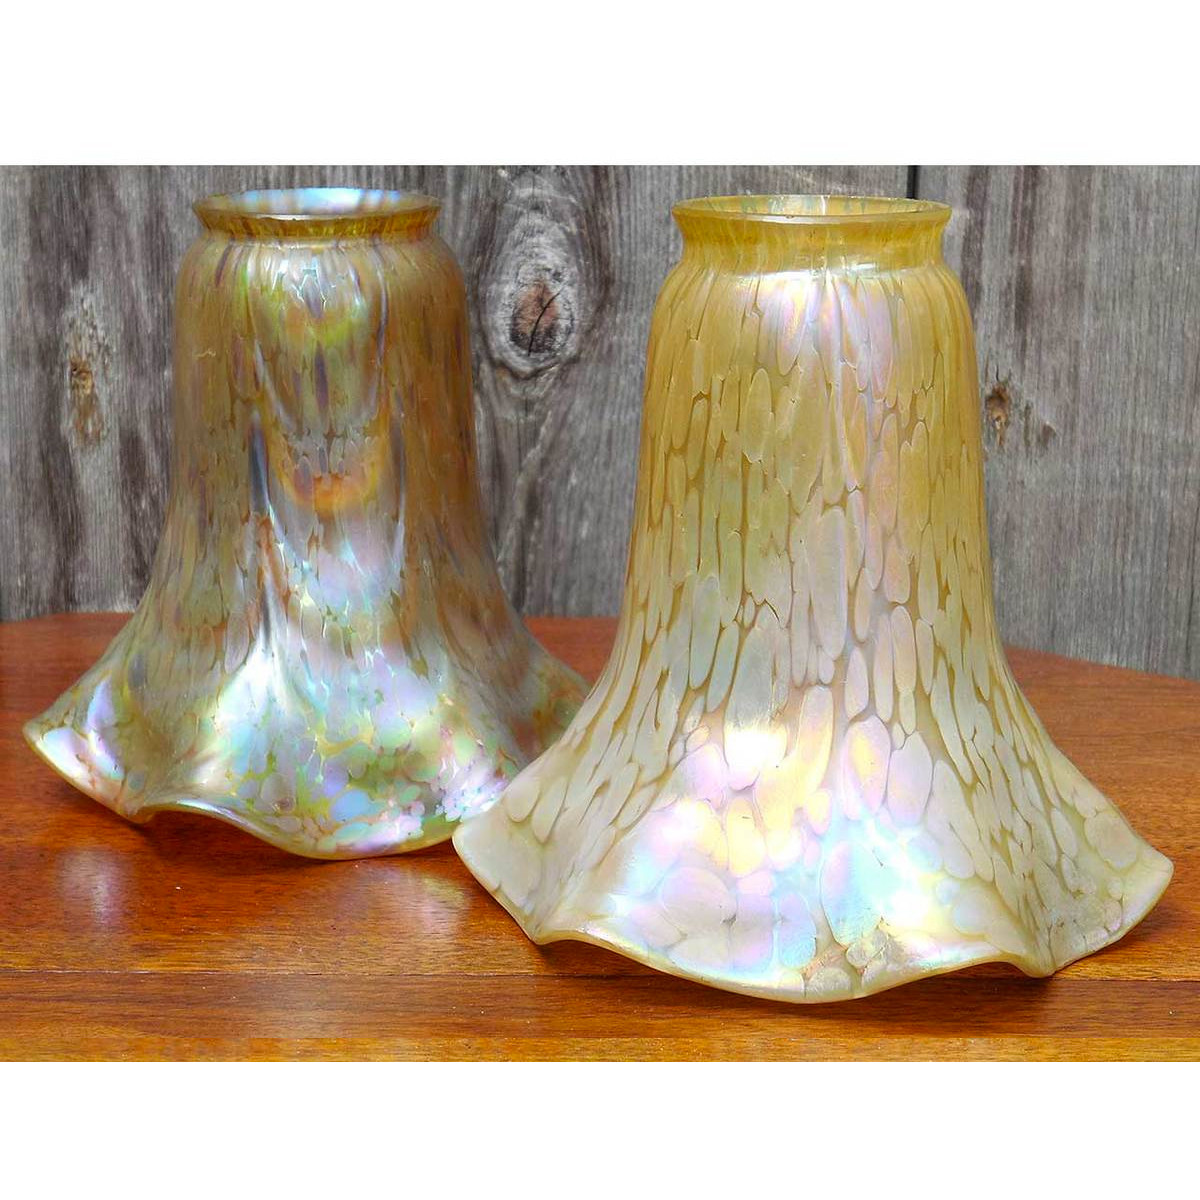 L14247 - Pair of Antique Loetz Art Glass Shades